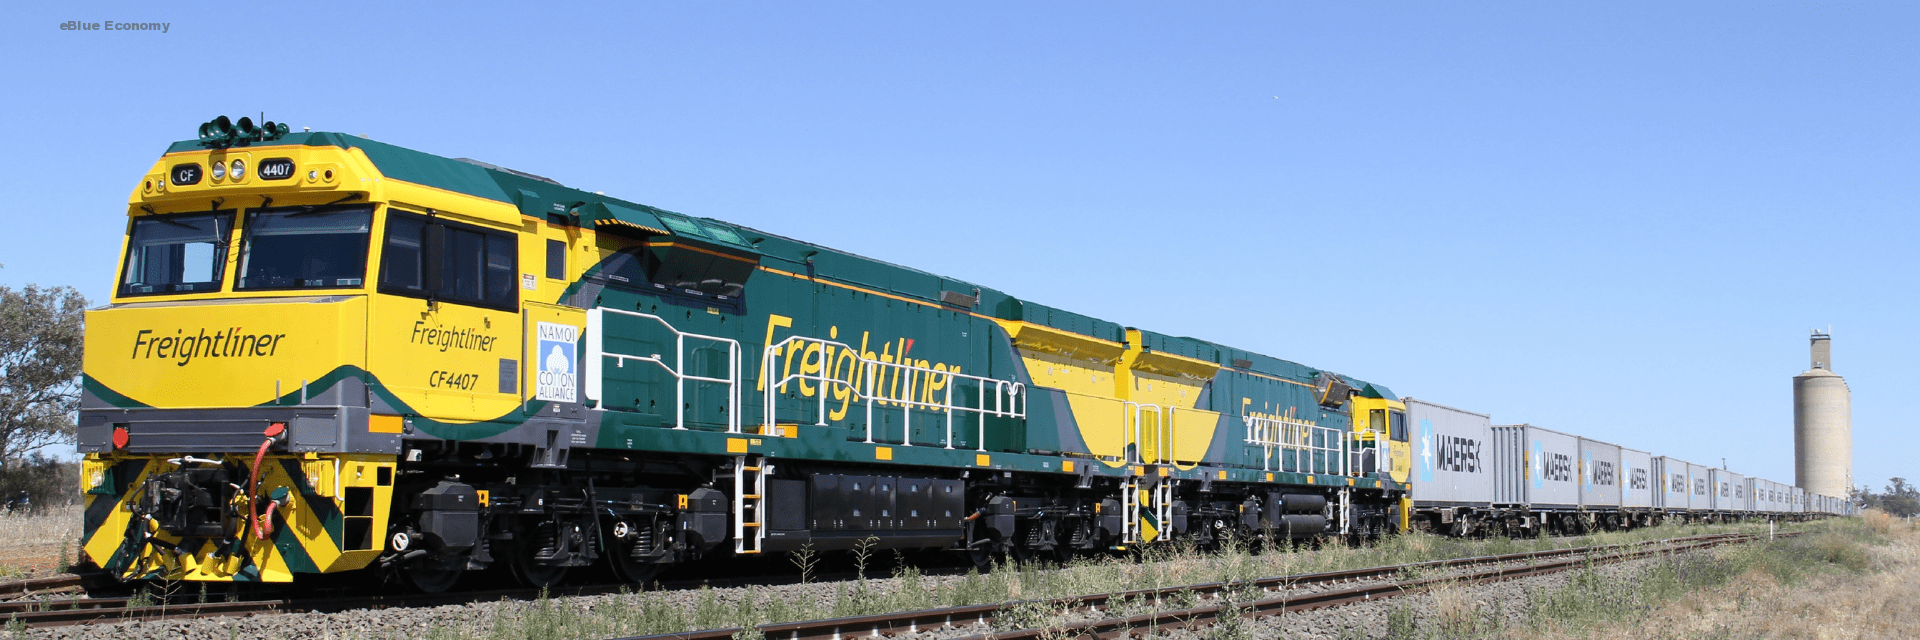 eblue_economy_PD Ports boosts Scottish rail freight service to support customer demand